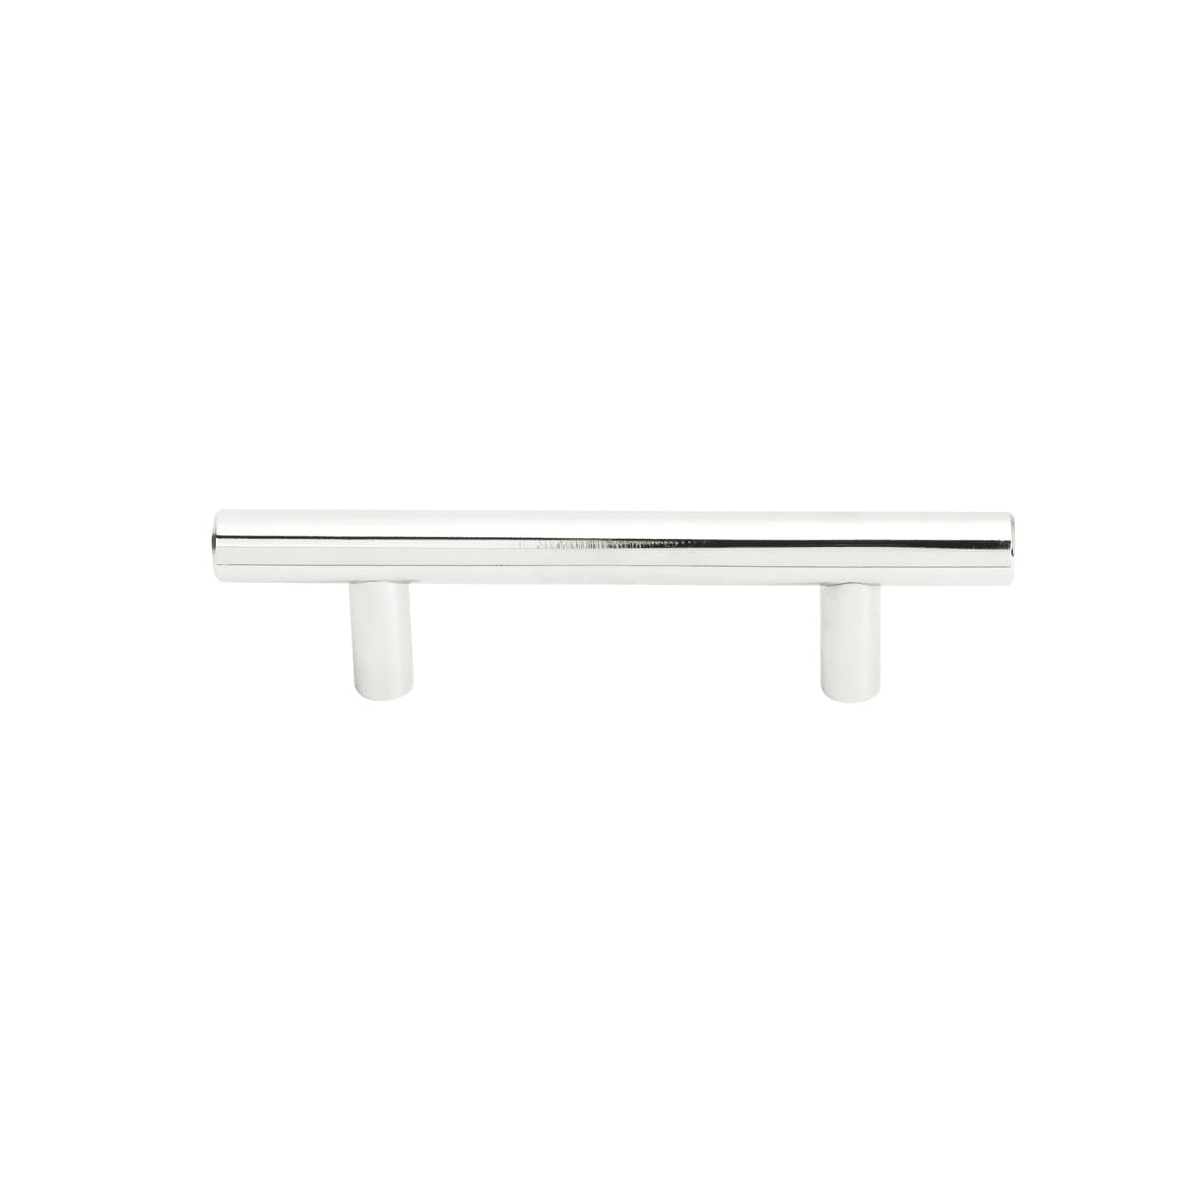 Emtek 86359us26 25pack Polished Chrome Brass Bar 3 1 2 Inch Center To Center Bar Cabinet Pull From The Contemporary Collection 25 Pack Handlesets Com